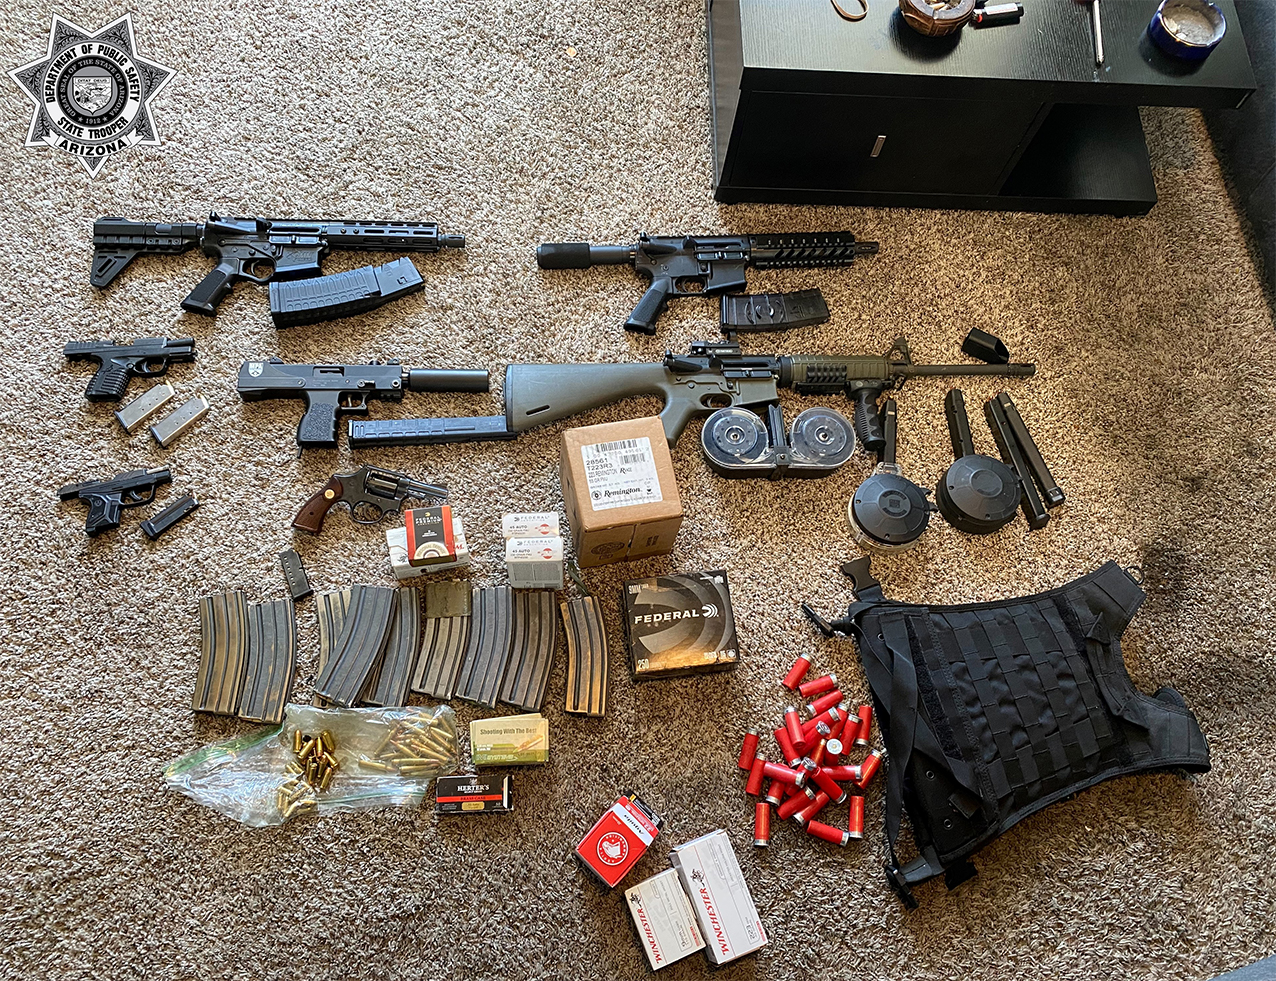 Weapons and drugs seized by detectives